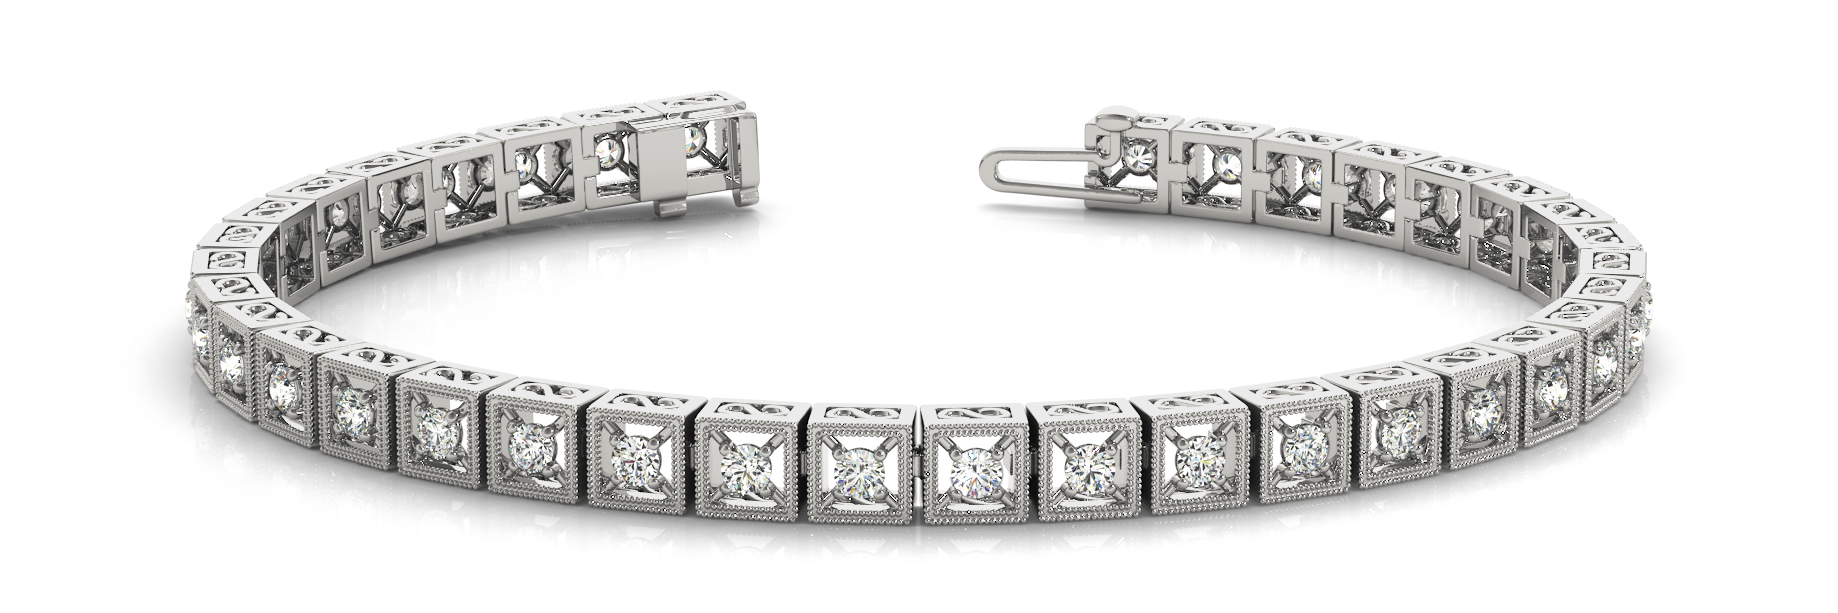 1.08 Carat Round Diamond Square Filigree Bracelet